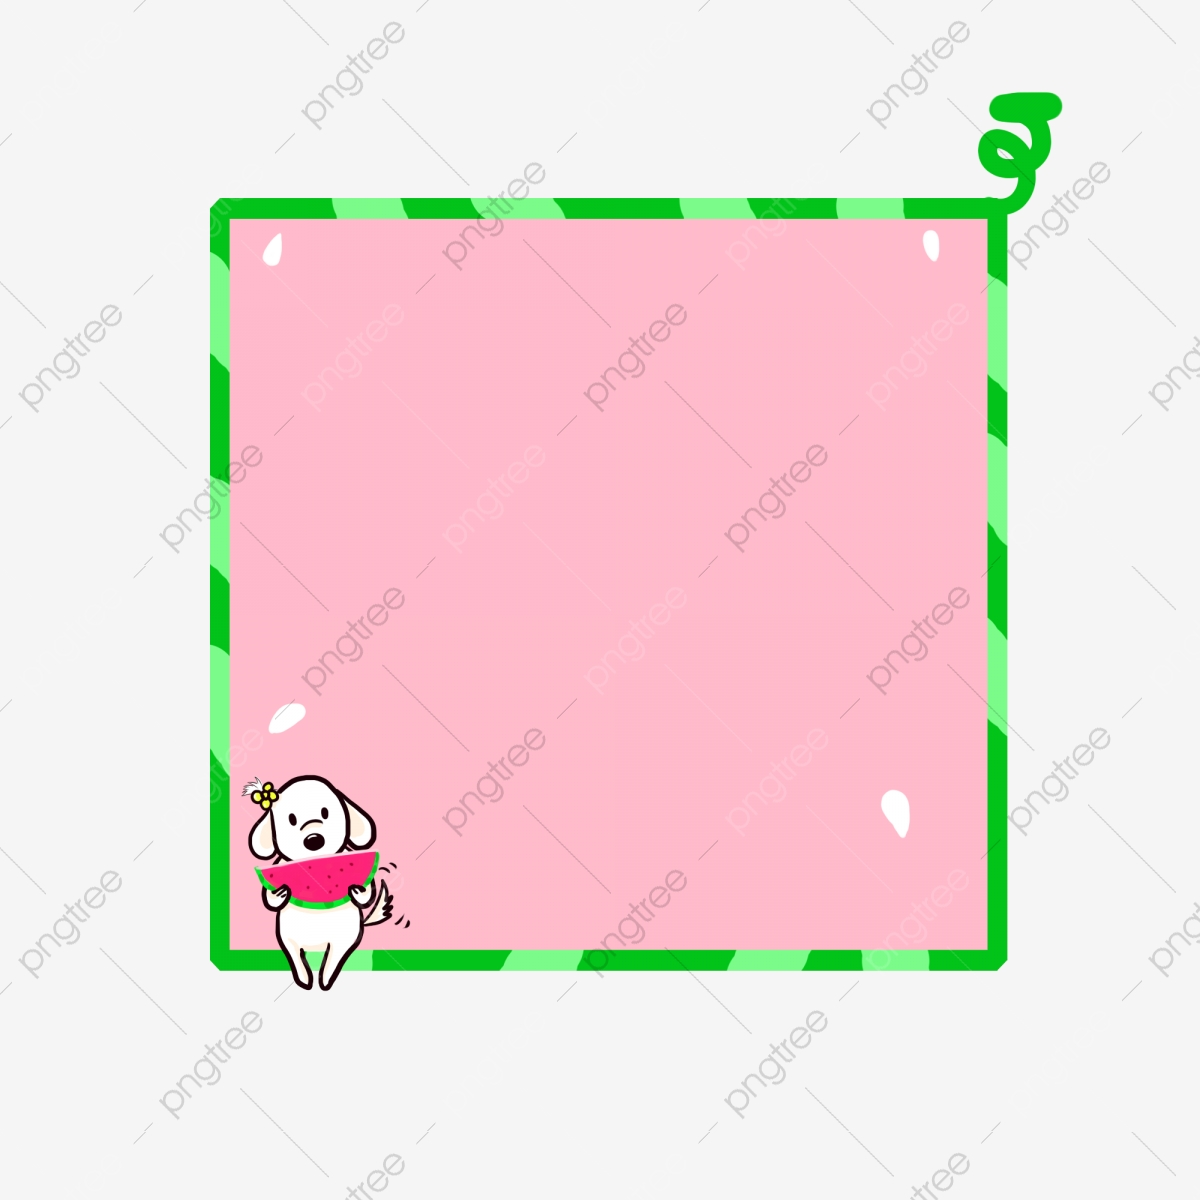 Cartoon Animal Cartoon Animals Dog Little White Dog Eat